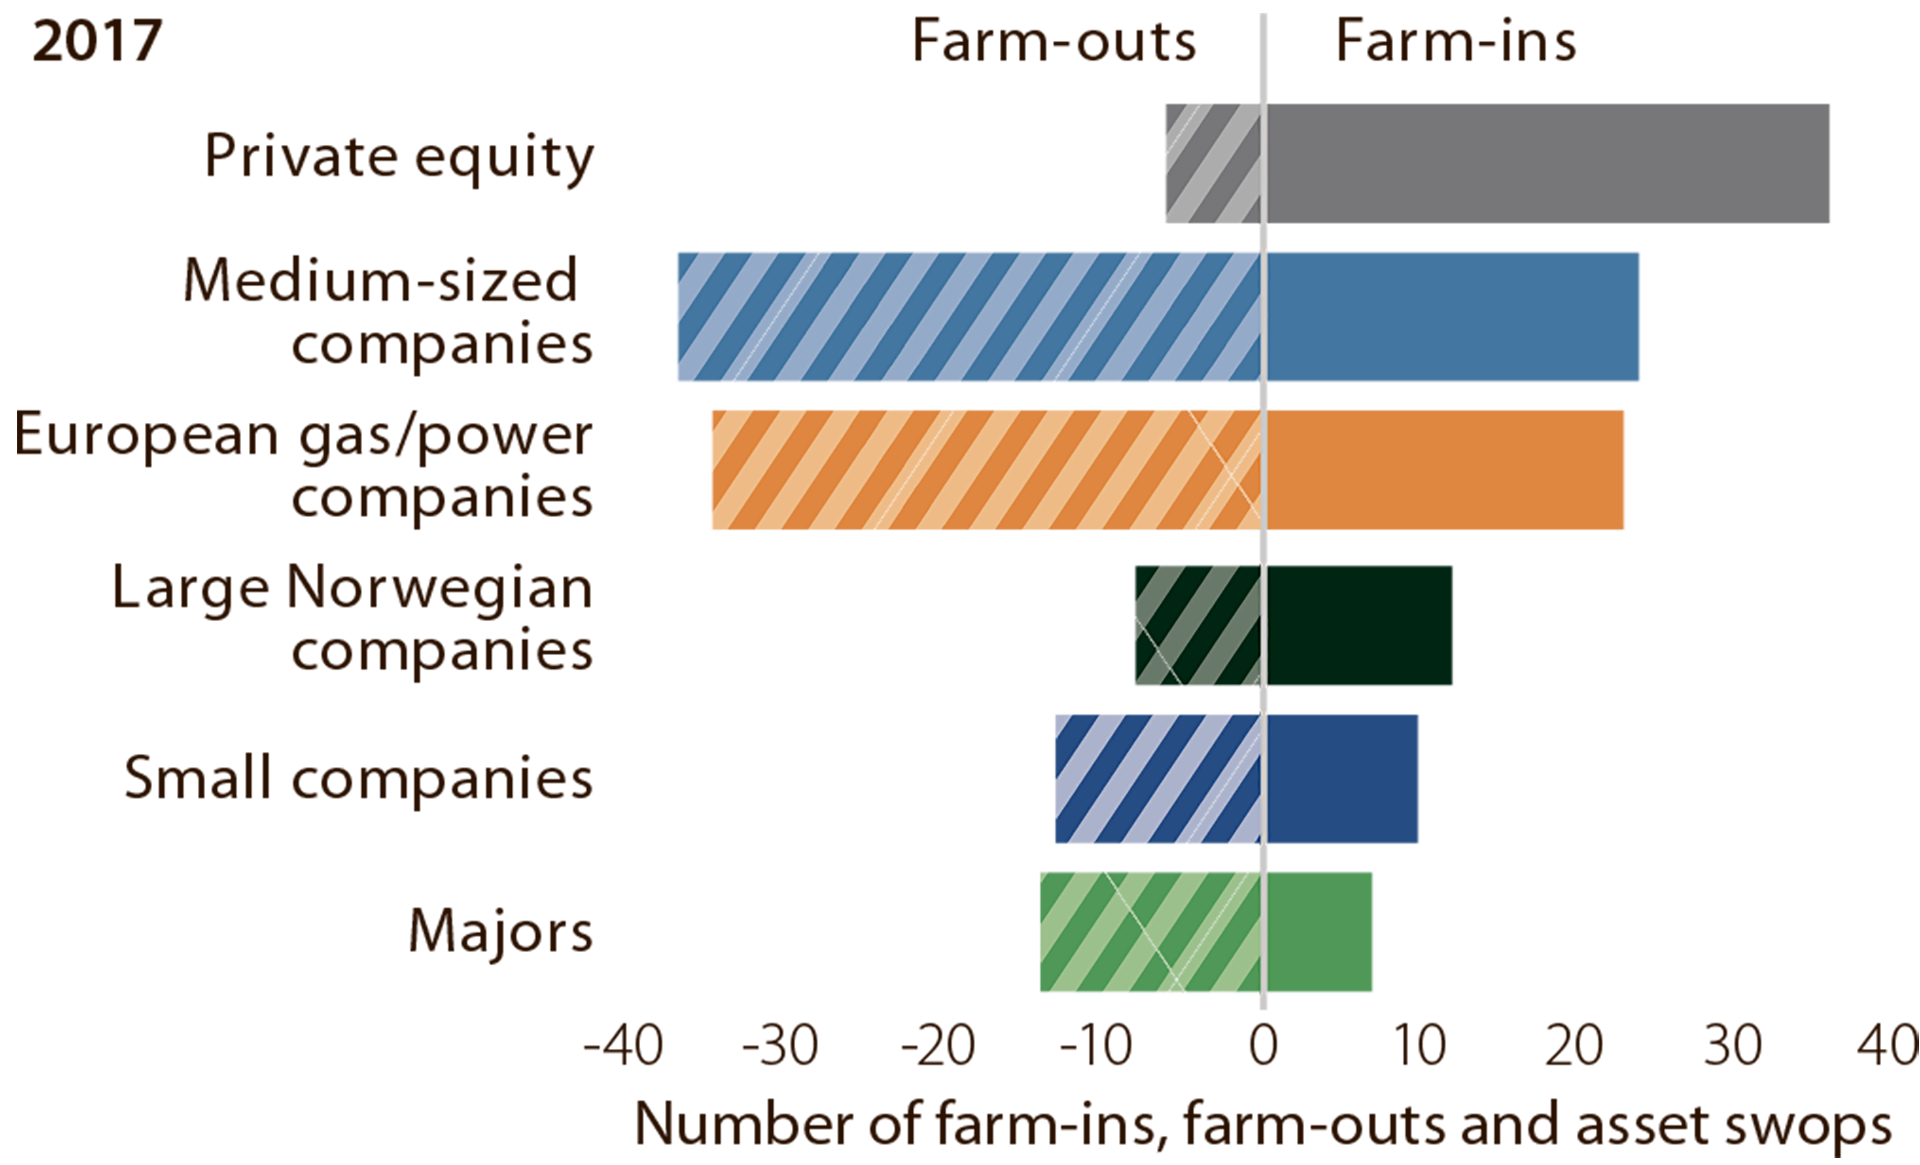 Figure 5.3 Farm-ins, farm-outs and swops of licence interests on the NCS in 2017.